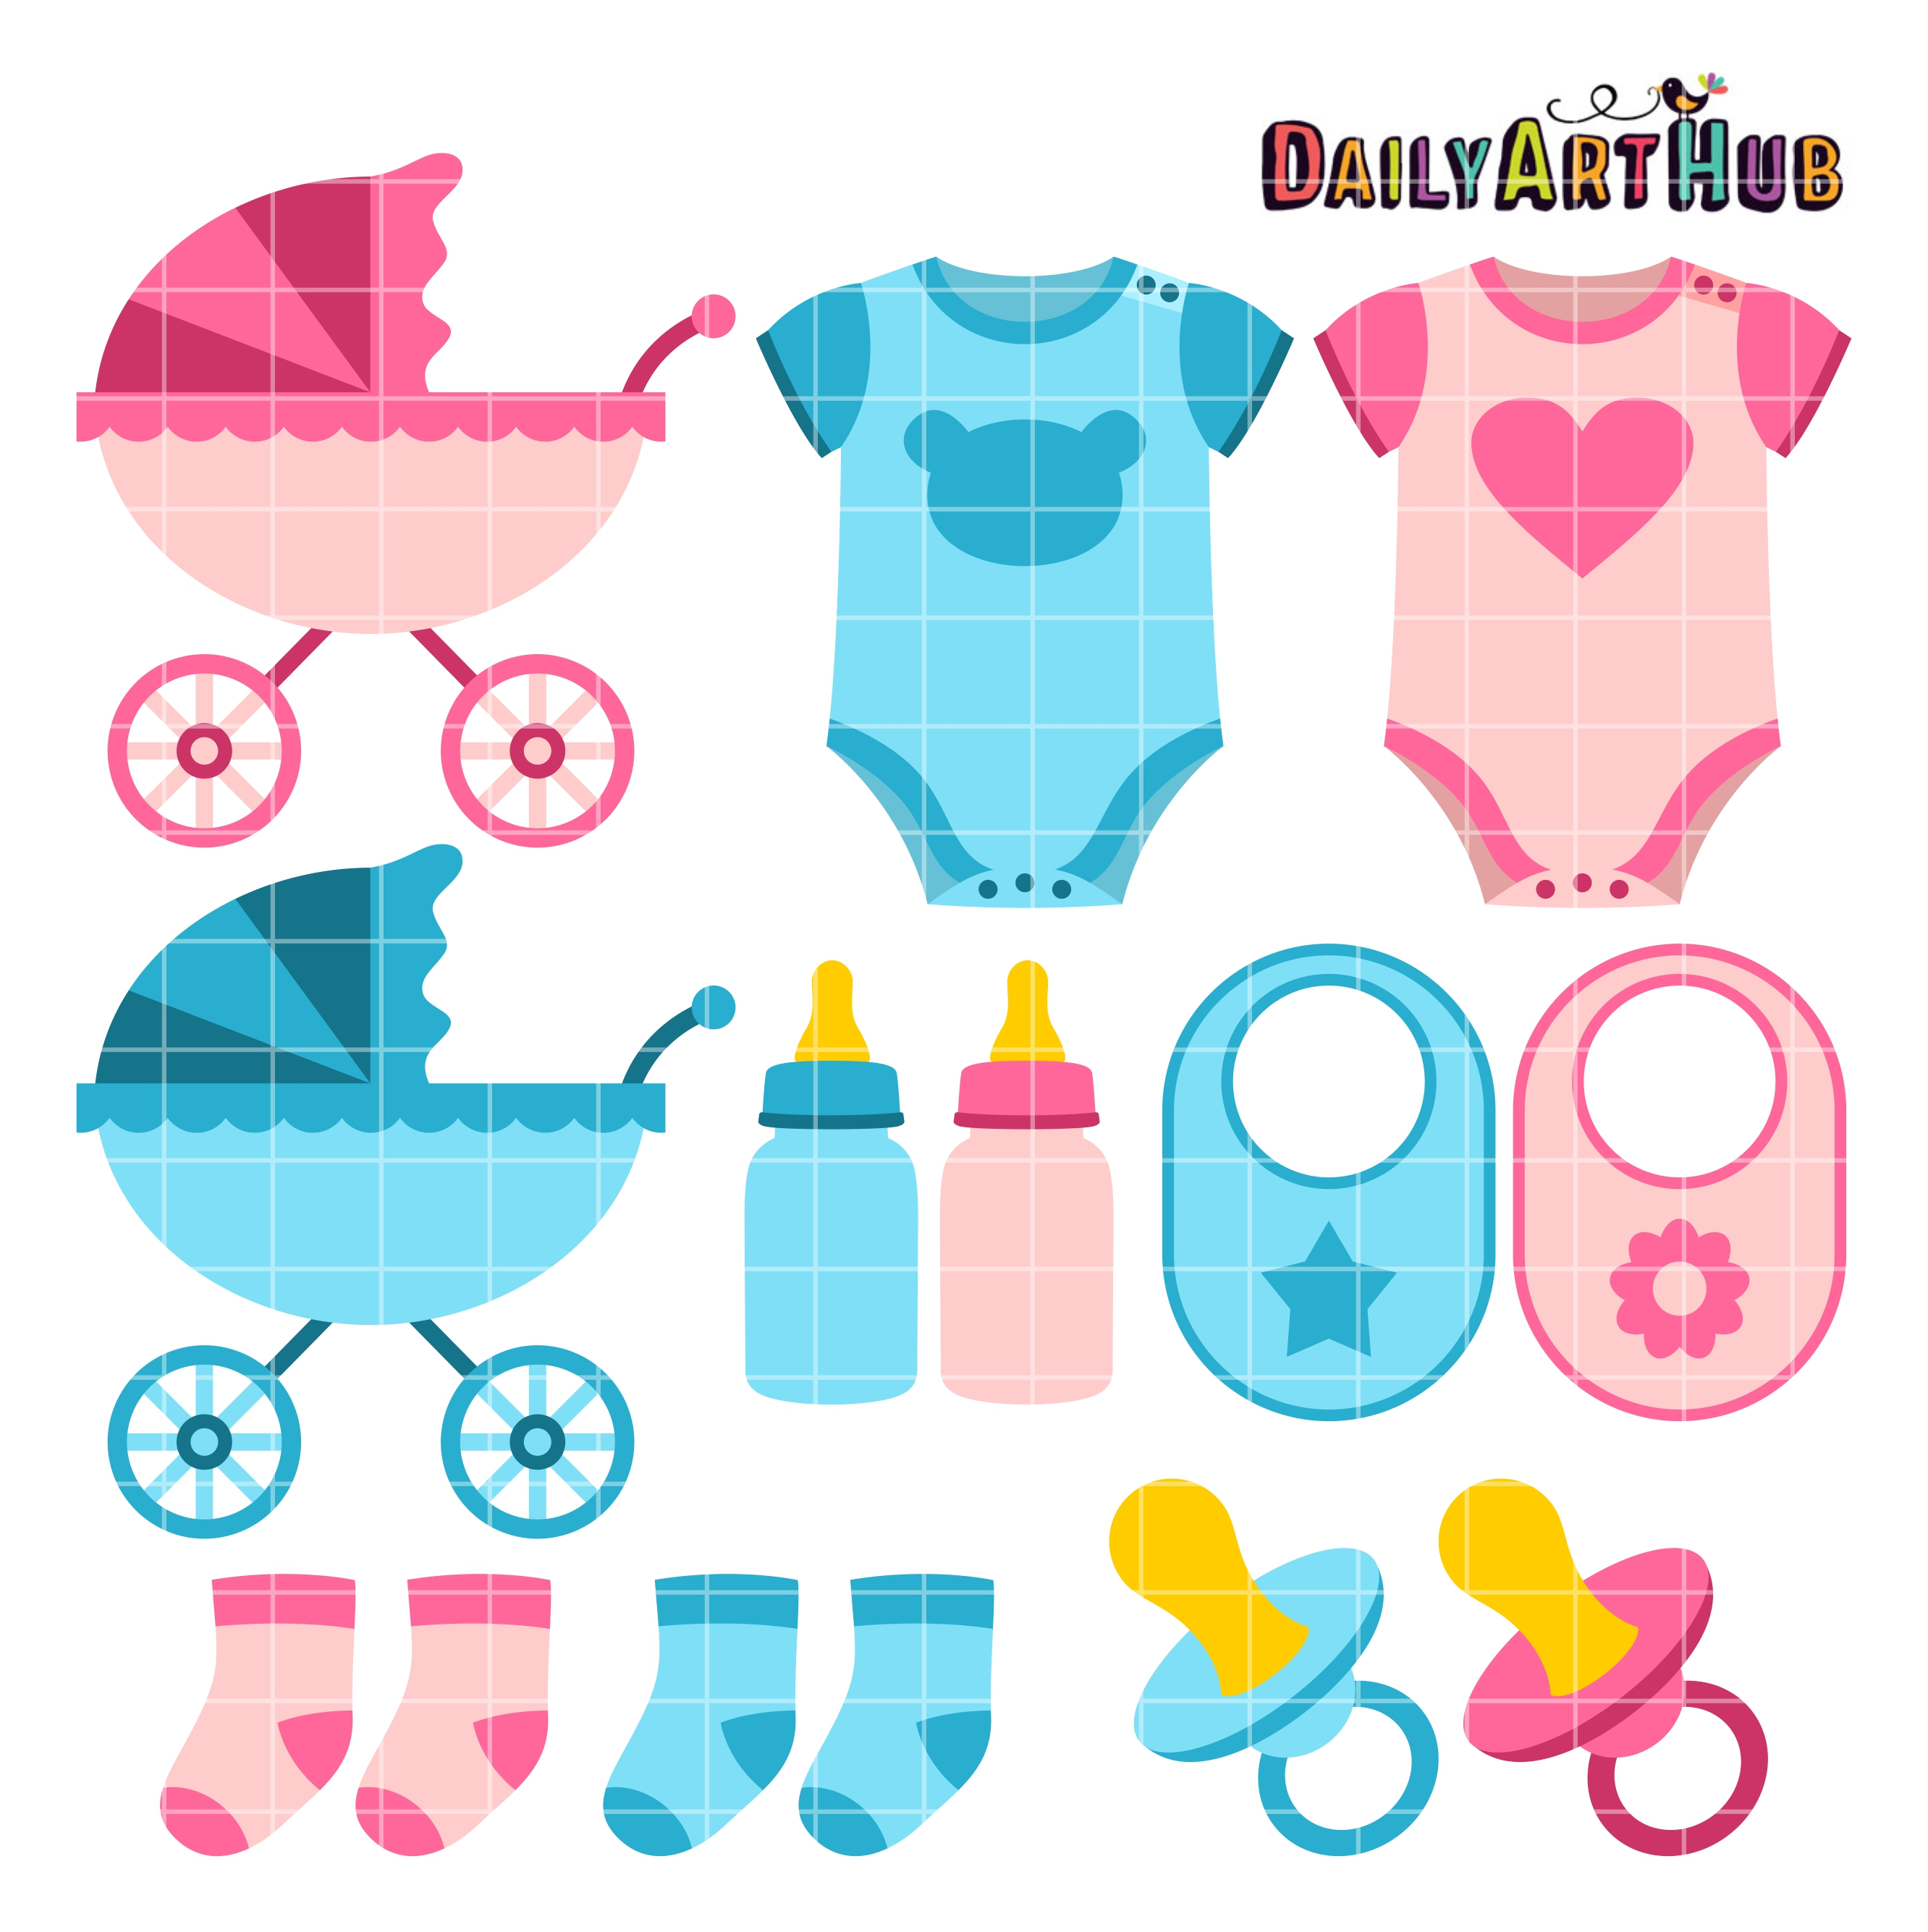 Free Baby Things Cliparts, Download Free Clip Art, Free Clip Art on.